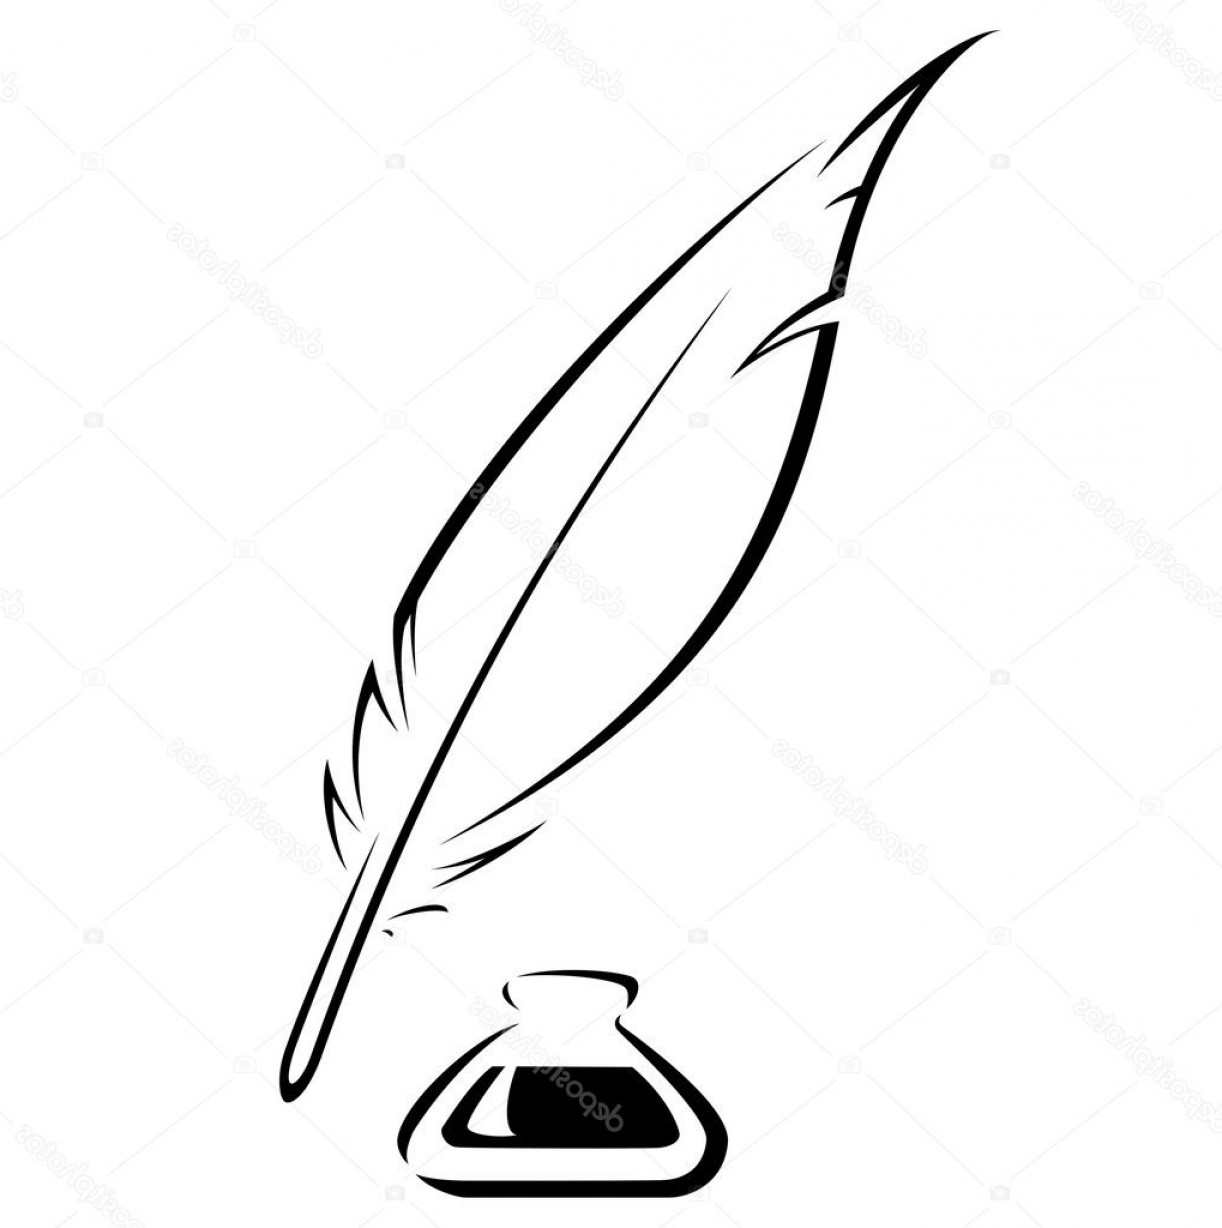 Quill Pen Vector: Stock Illustration Quill And Ink Pot Black